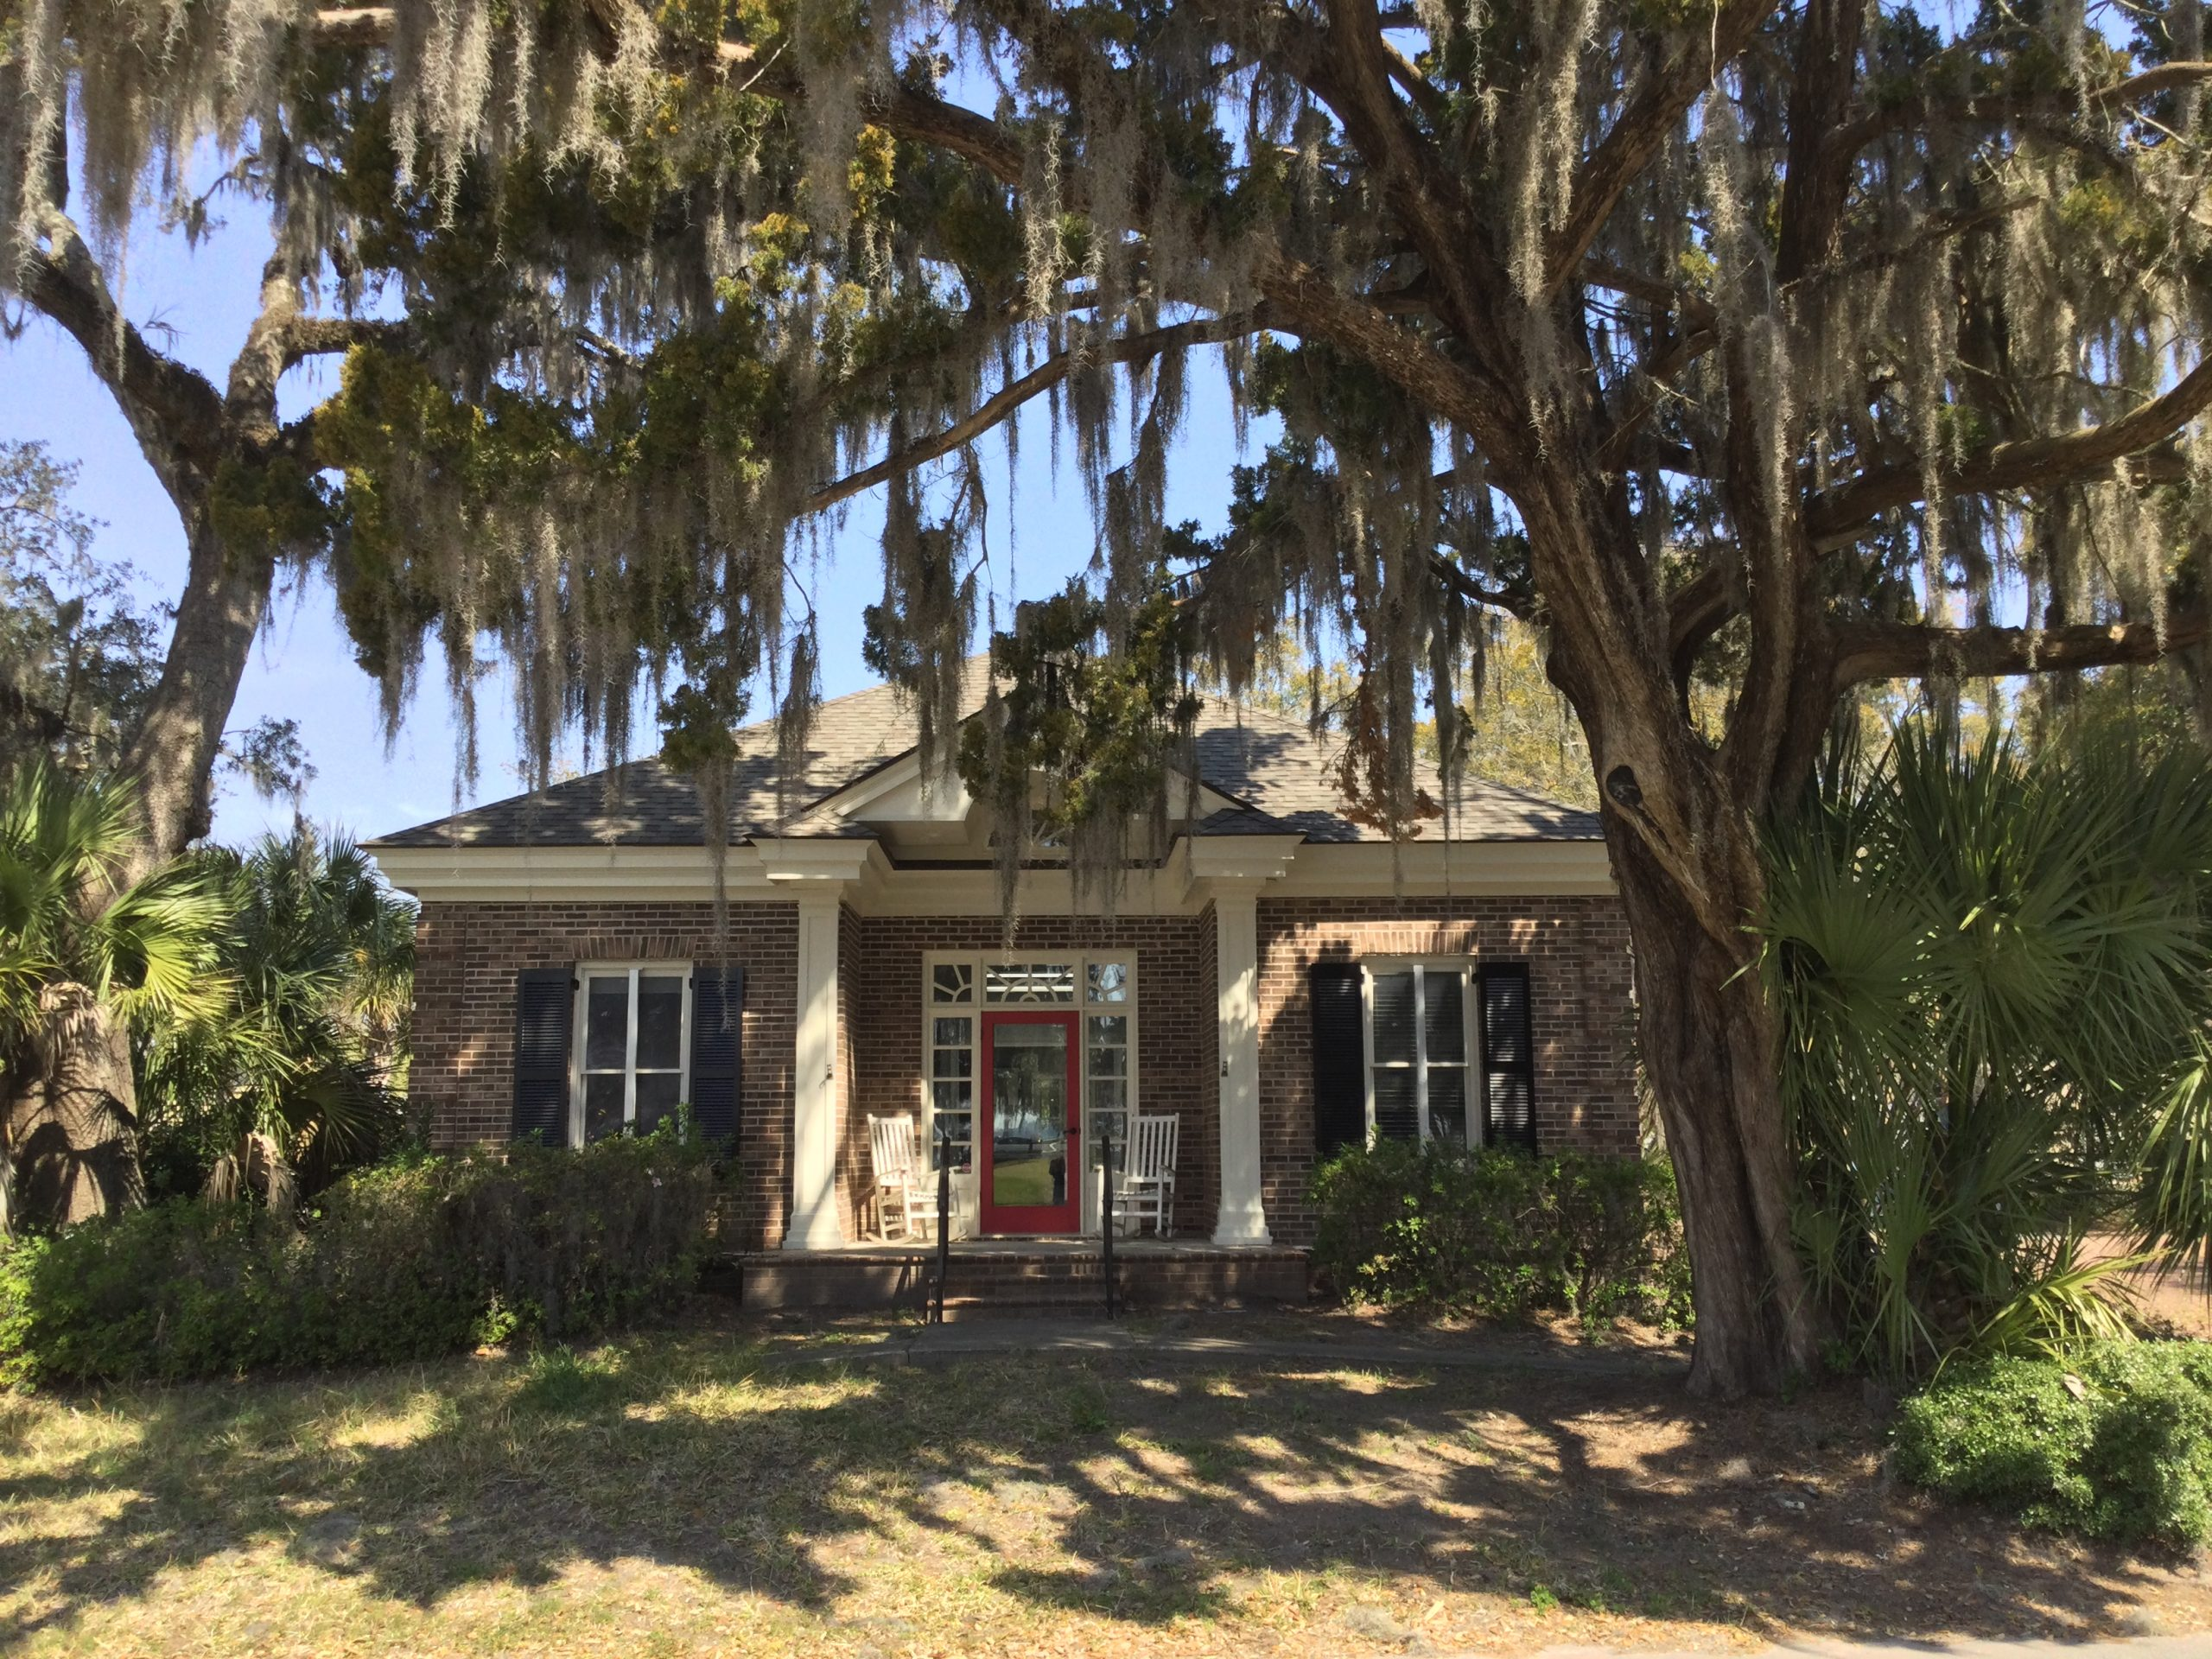 The Pat Conroy Literary Center in Beaufort, South Carolina